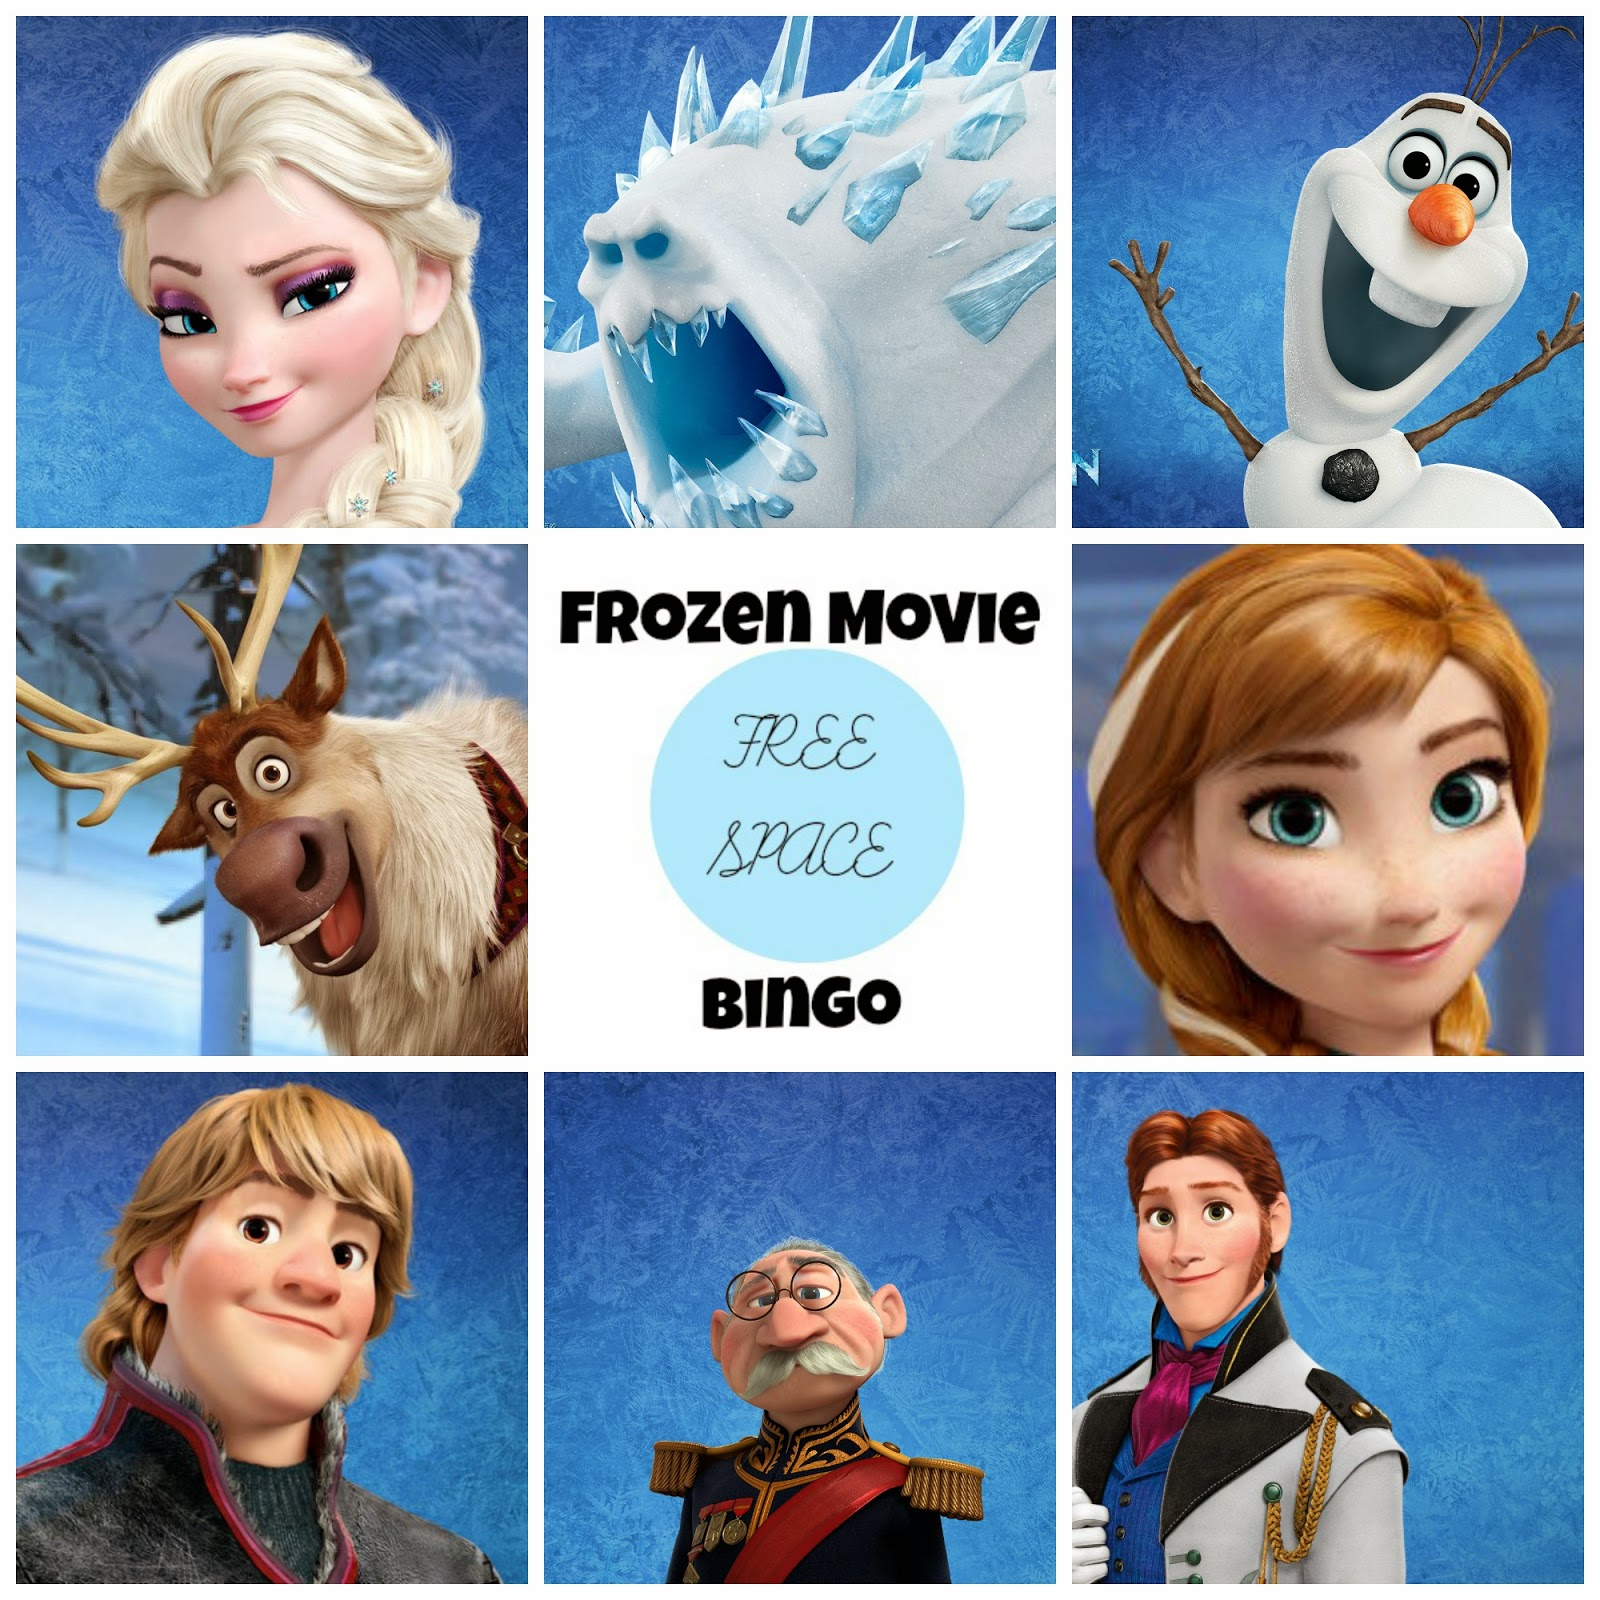 Frozen Free Printable Bingo. - Oh My Fiesta! In English